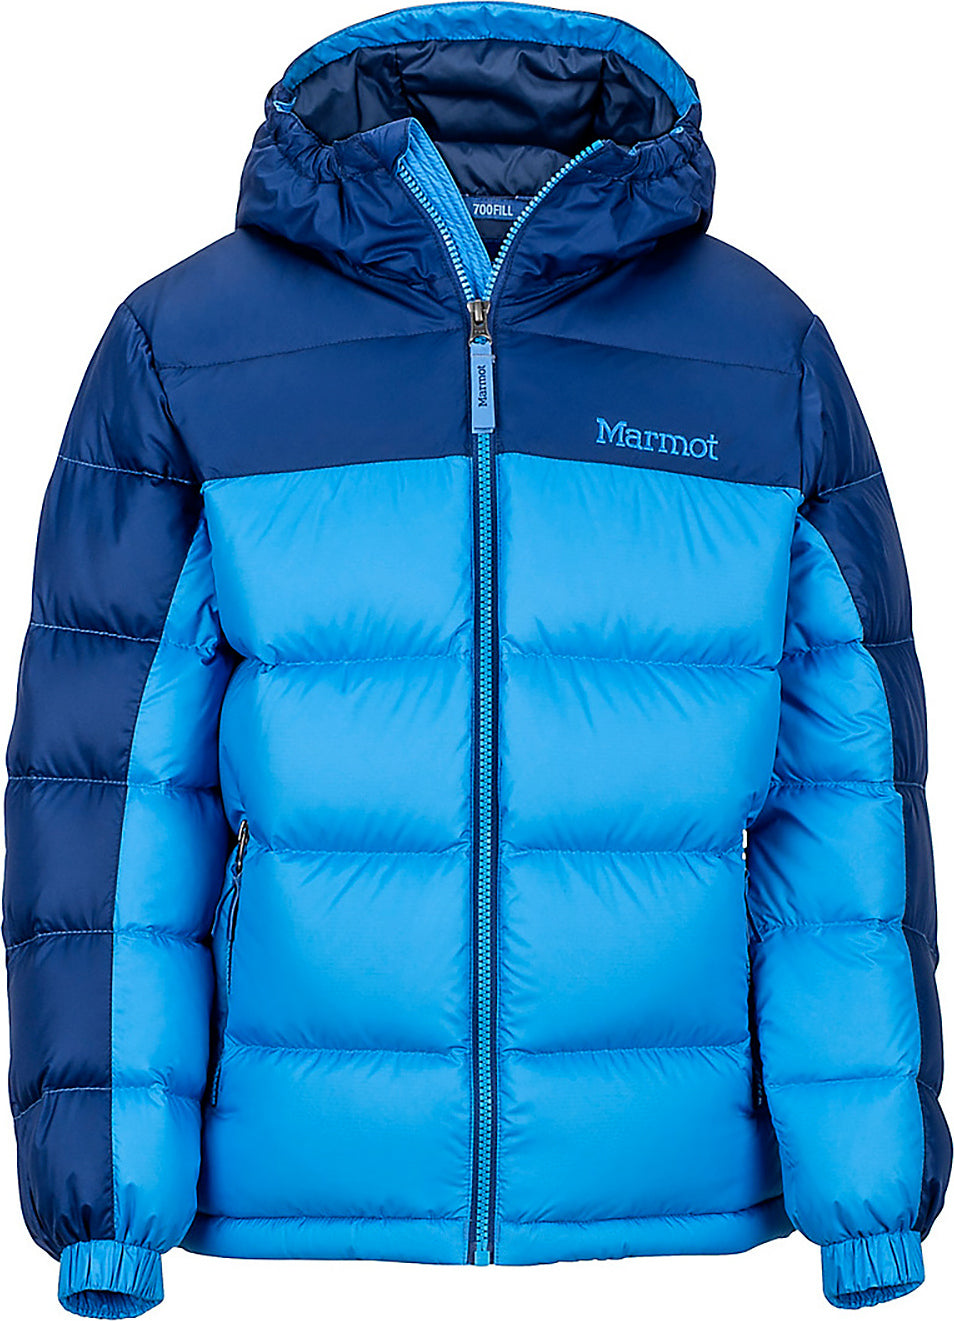 f2228d4e1 Marmot Boy's Guides Down Hoody | Altitude Sports